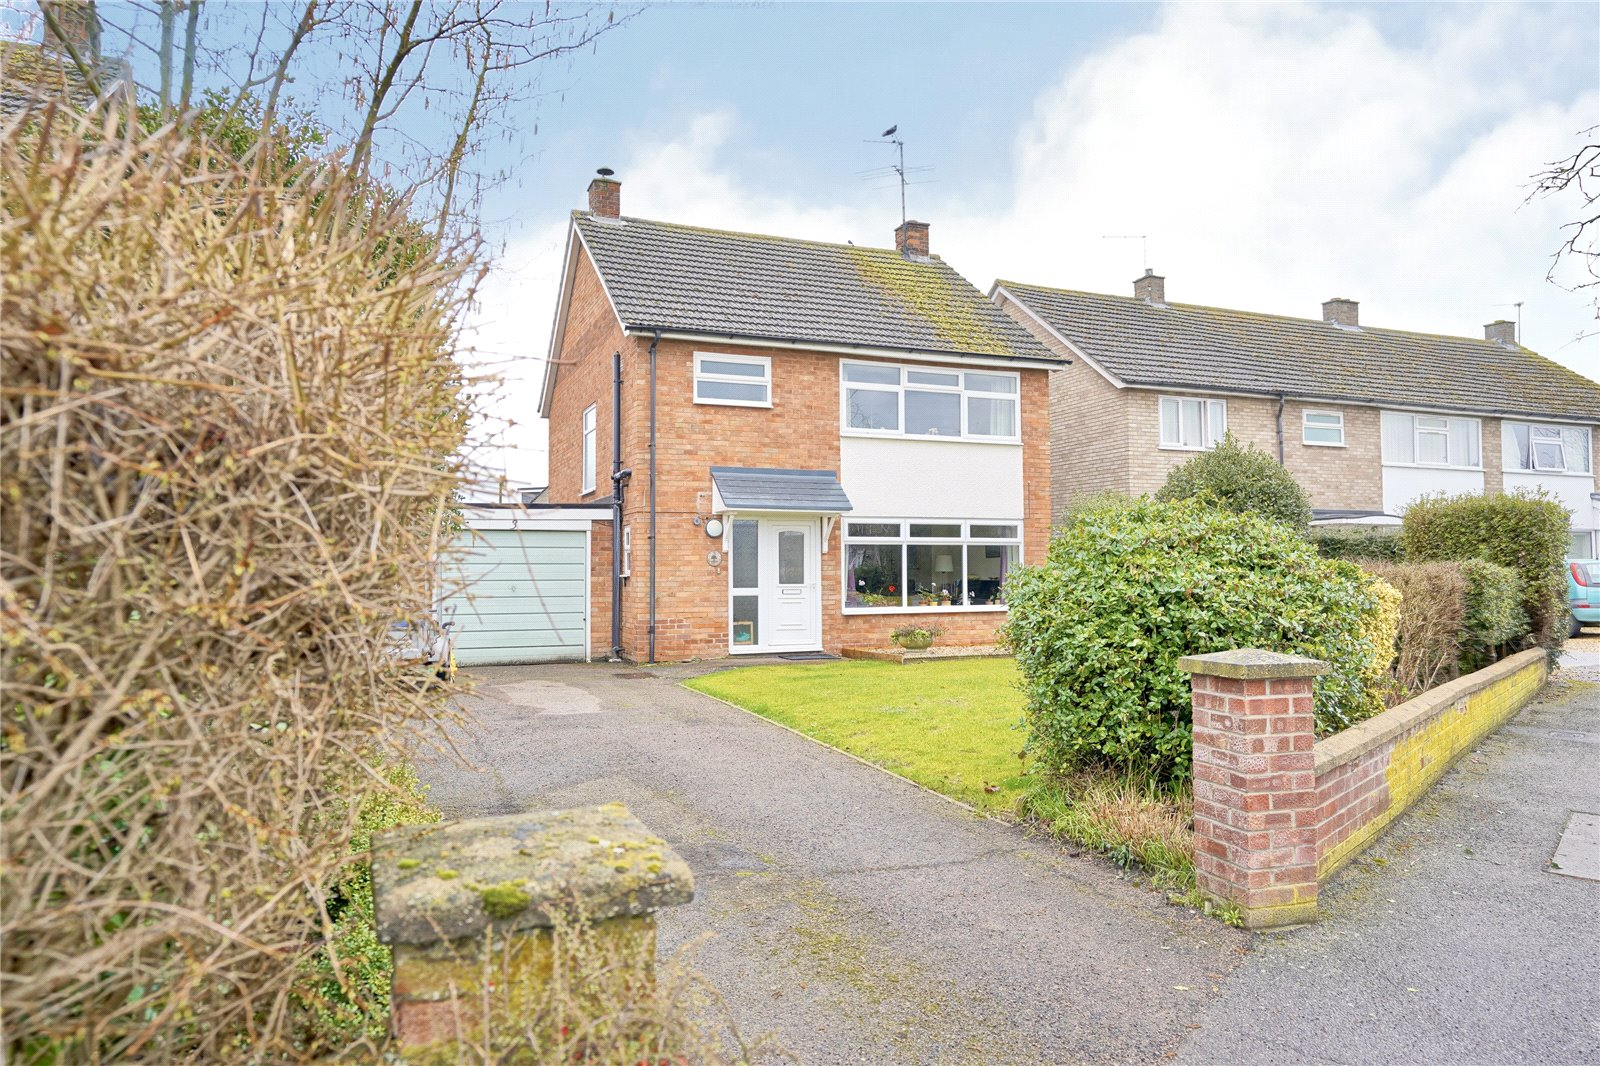 3 bed house for sale in St. Ives, PE27 6UD 0